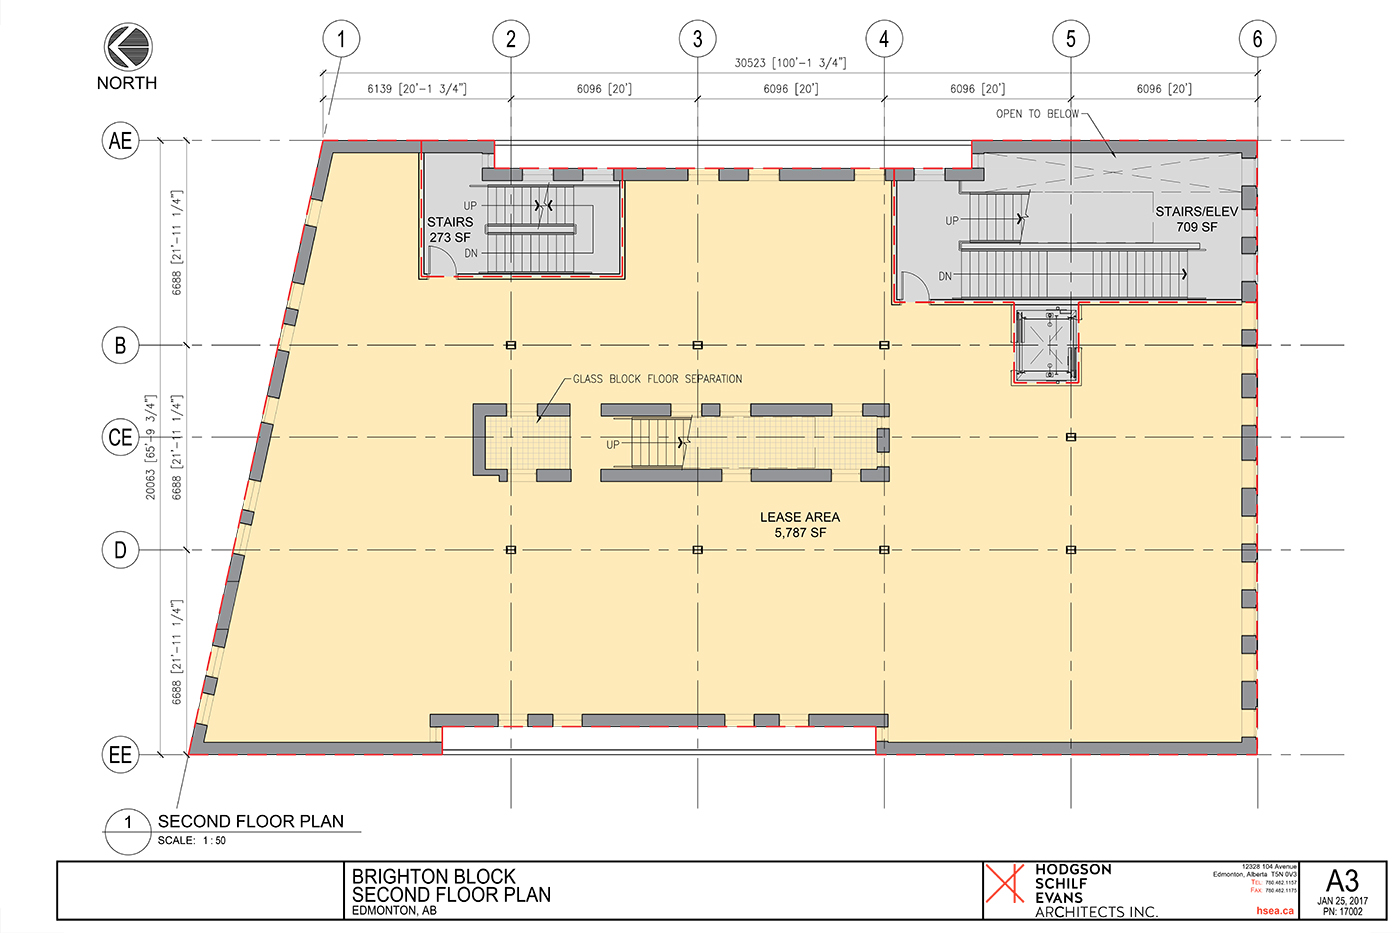 Brighton-Block-Concept-Plans-0125-2 copy.jpg